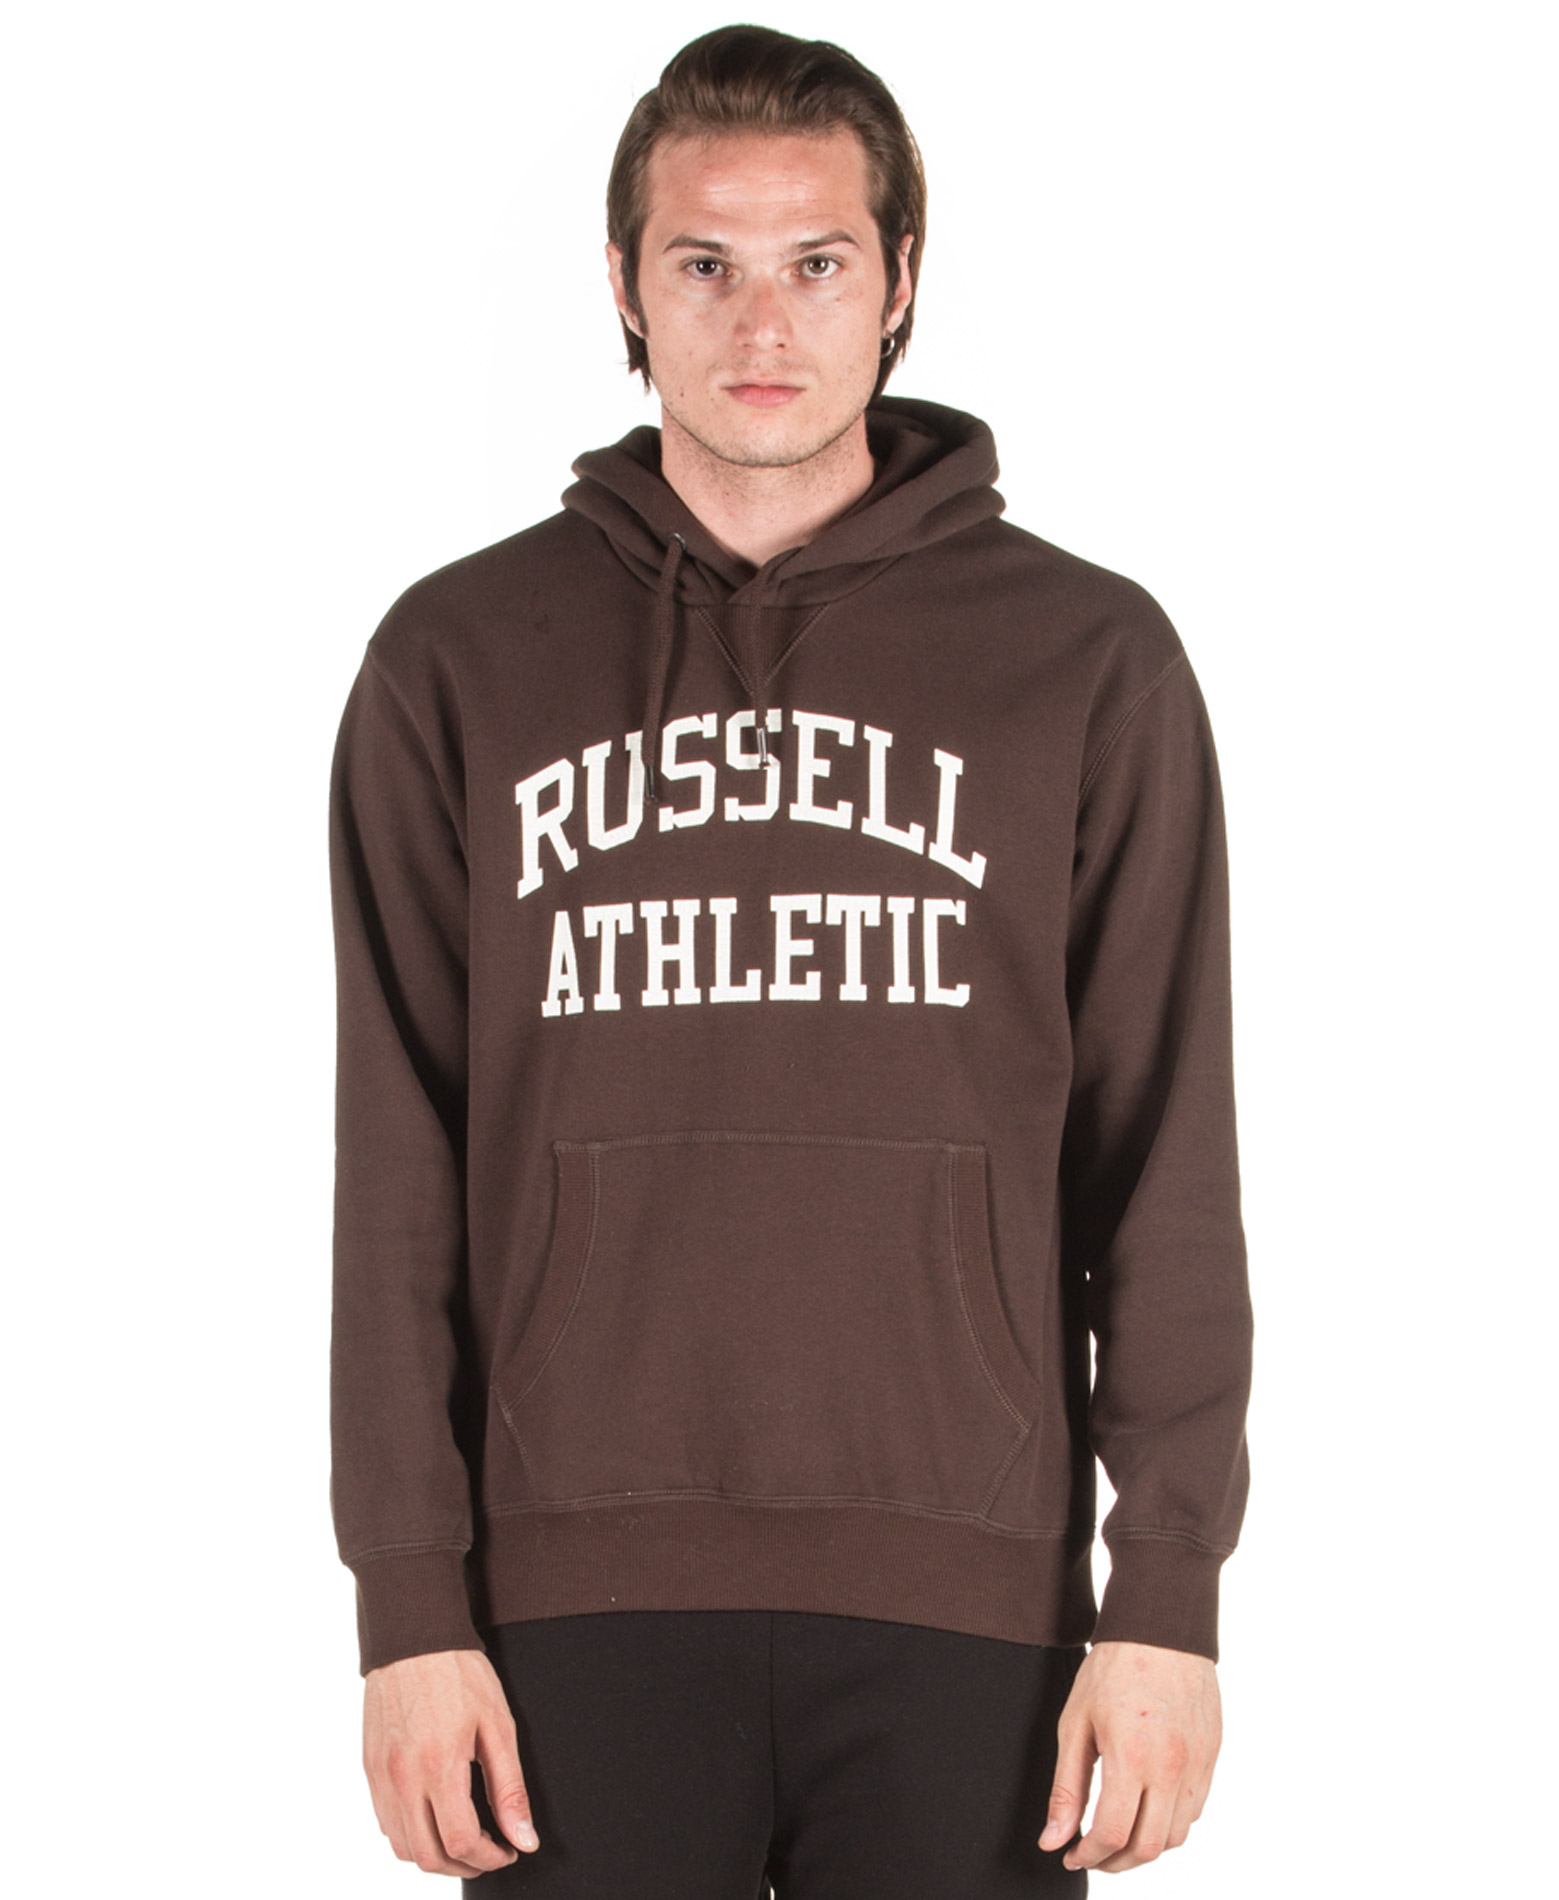 Russell Athletic A8-010-2-559 Καφέ